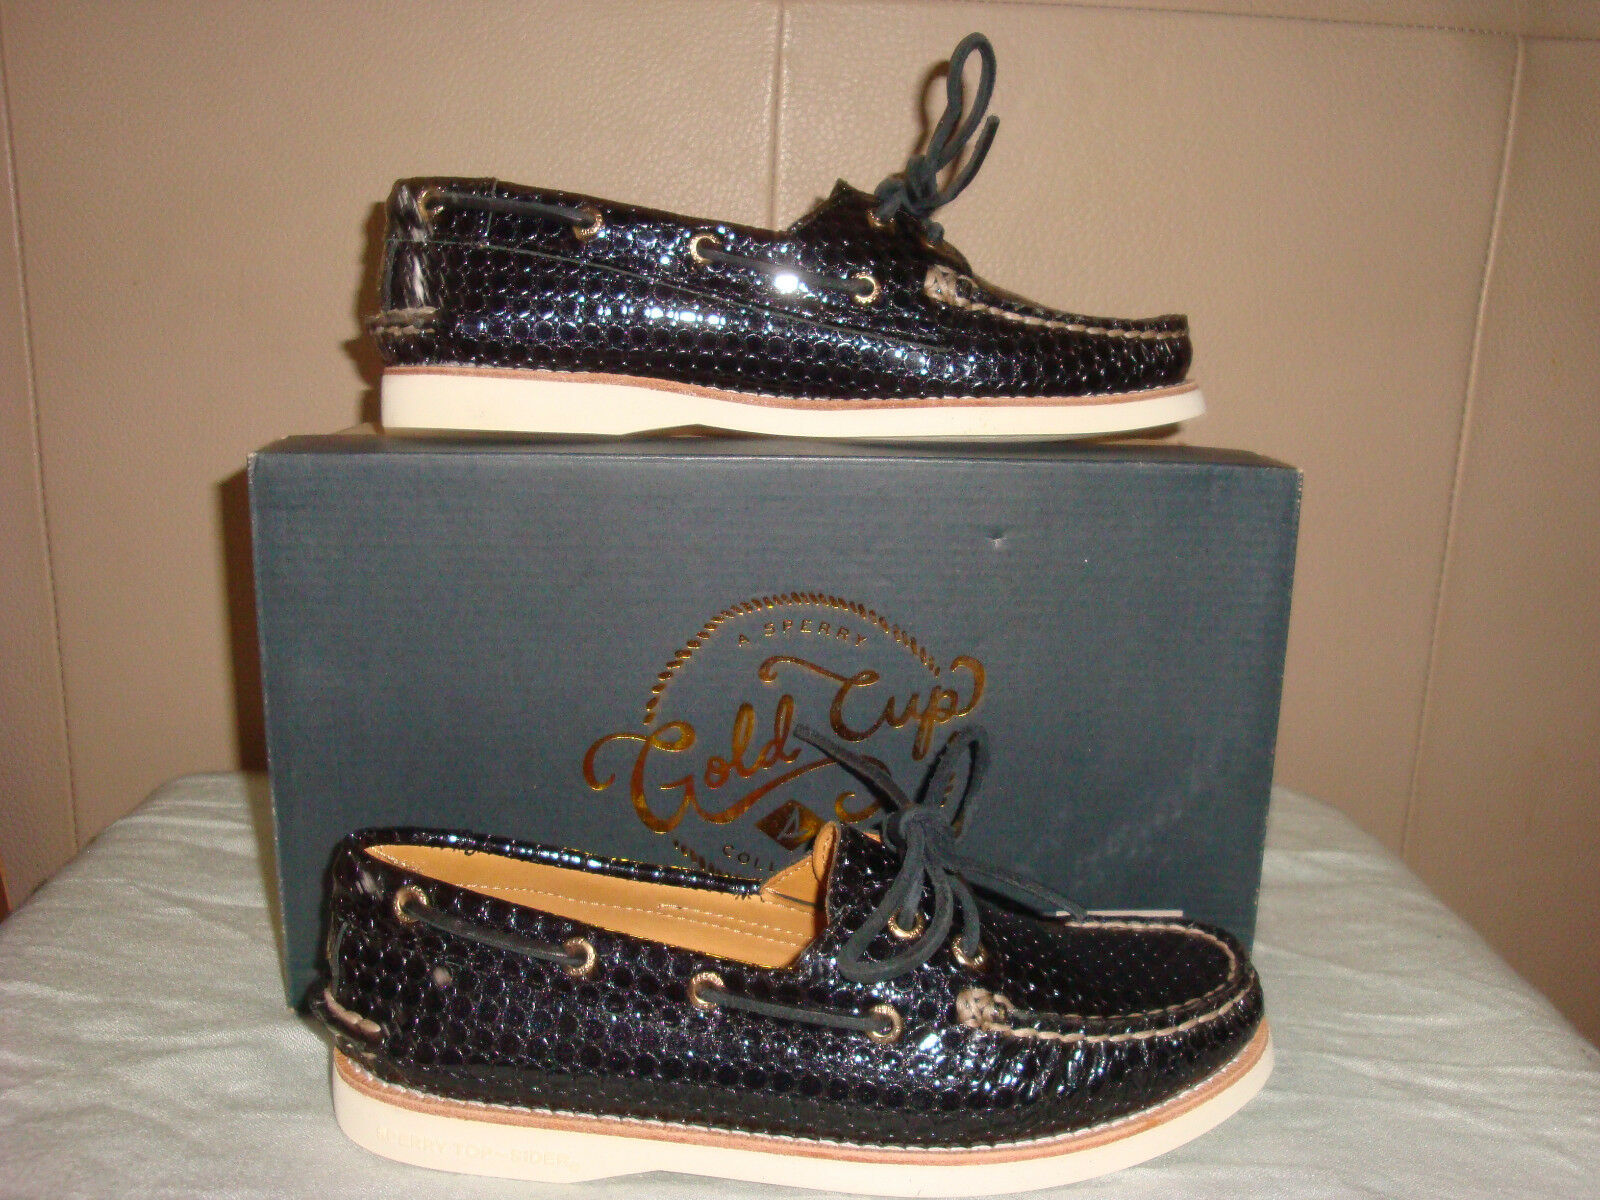 Women/s SPERRY TOP PATENT SIDER GOLD CUP A/O EMBOSSED PATENT TOP BLACK  Size 51/2 NIB!!! 1f17d3